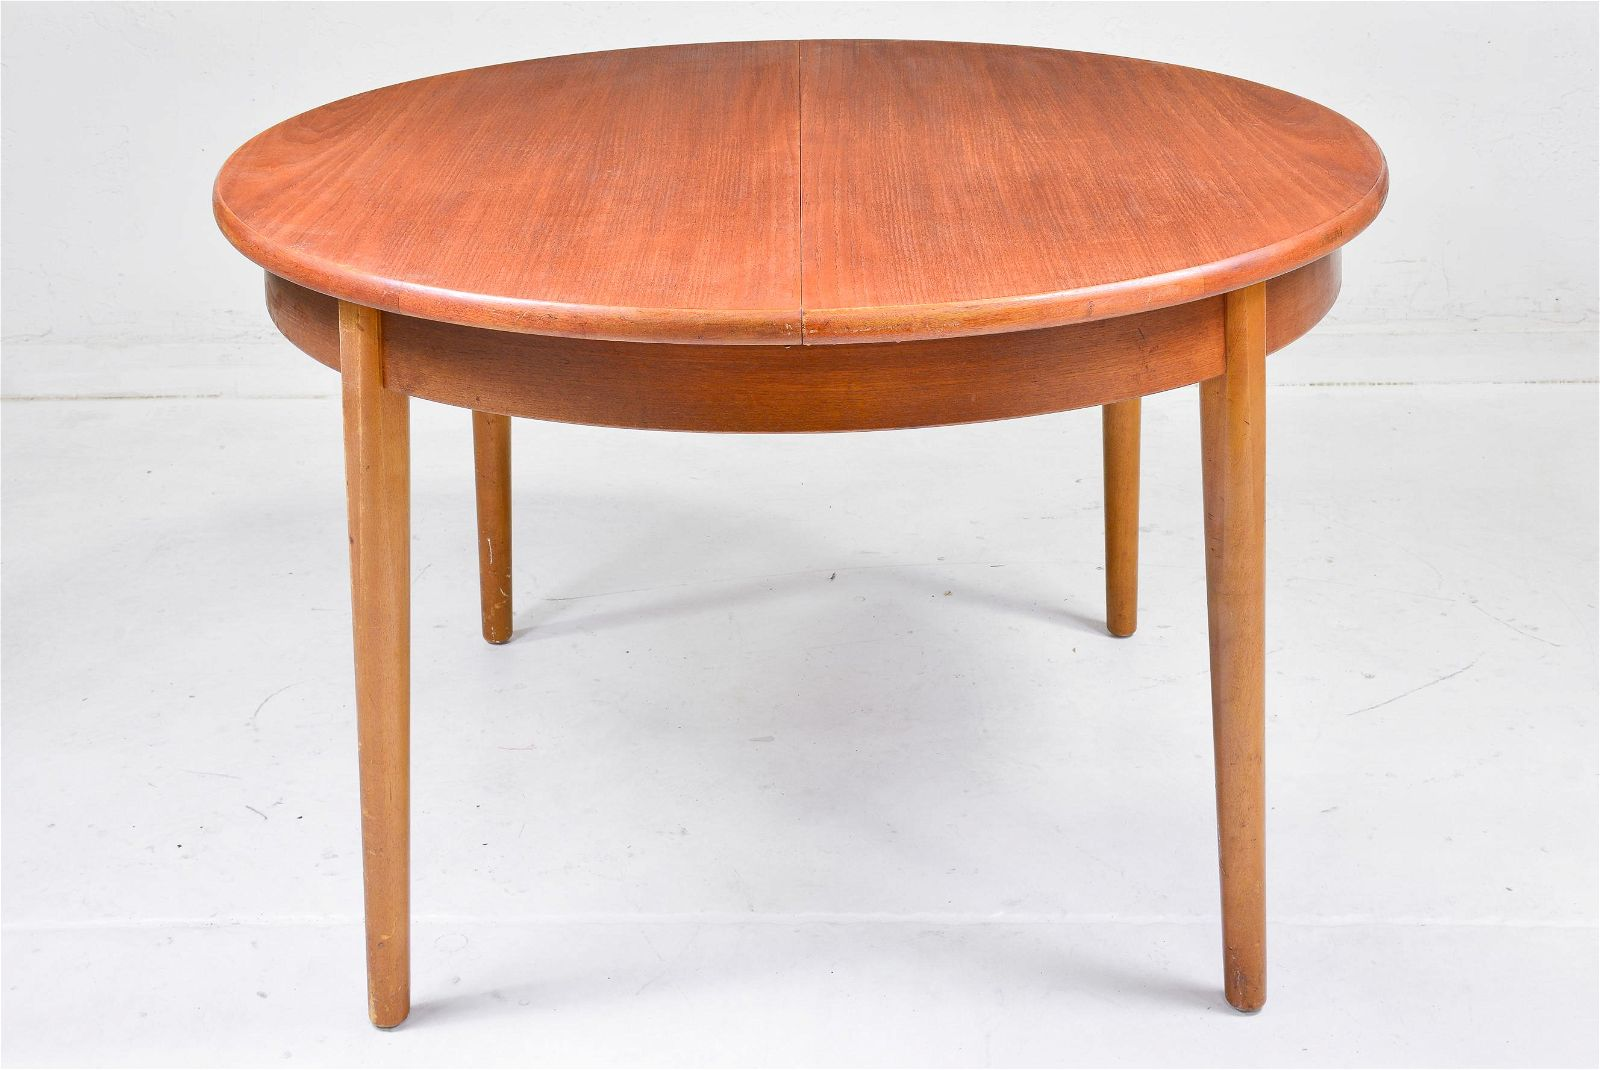 Round Mid Century Modern Dining Table - Pop Up Leaf